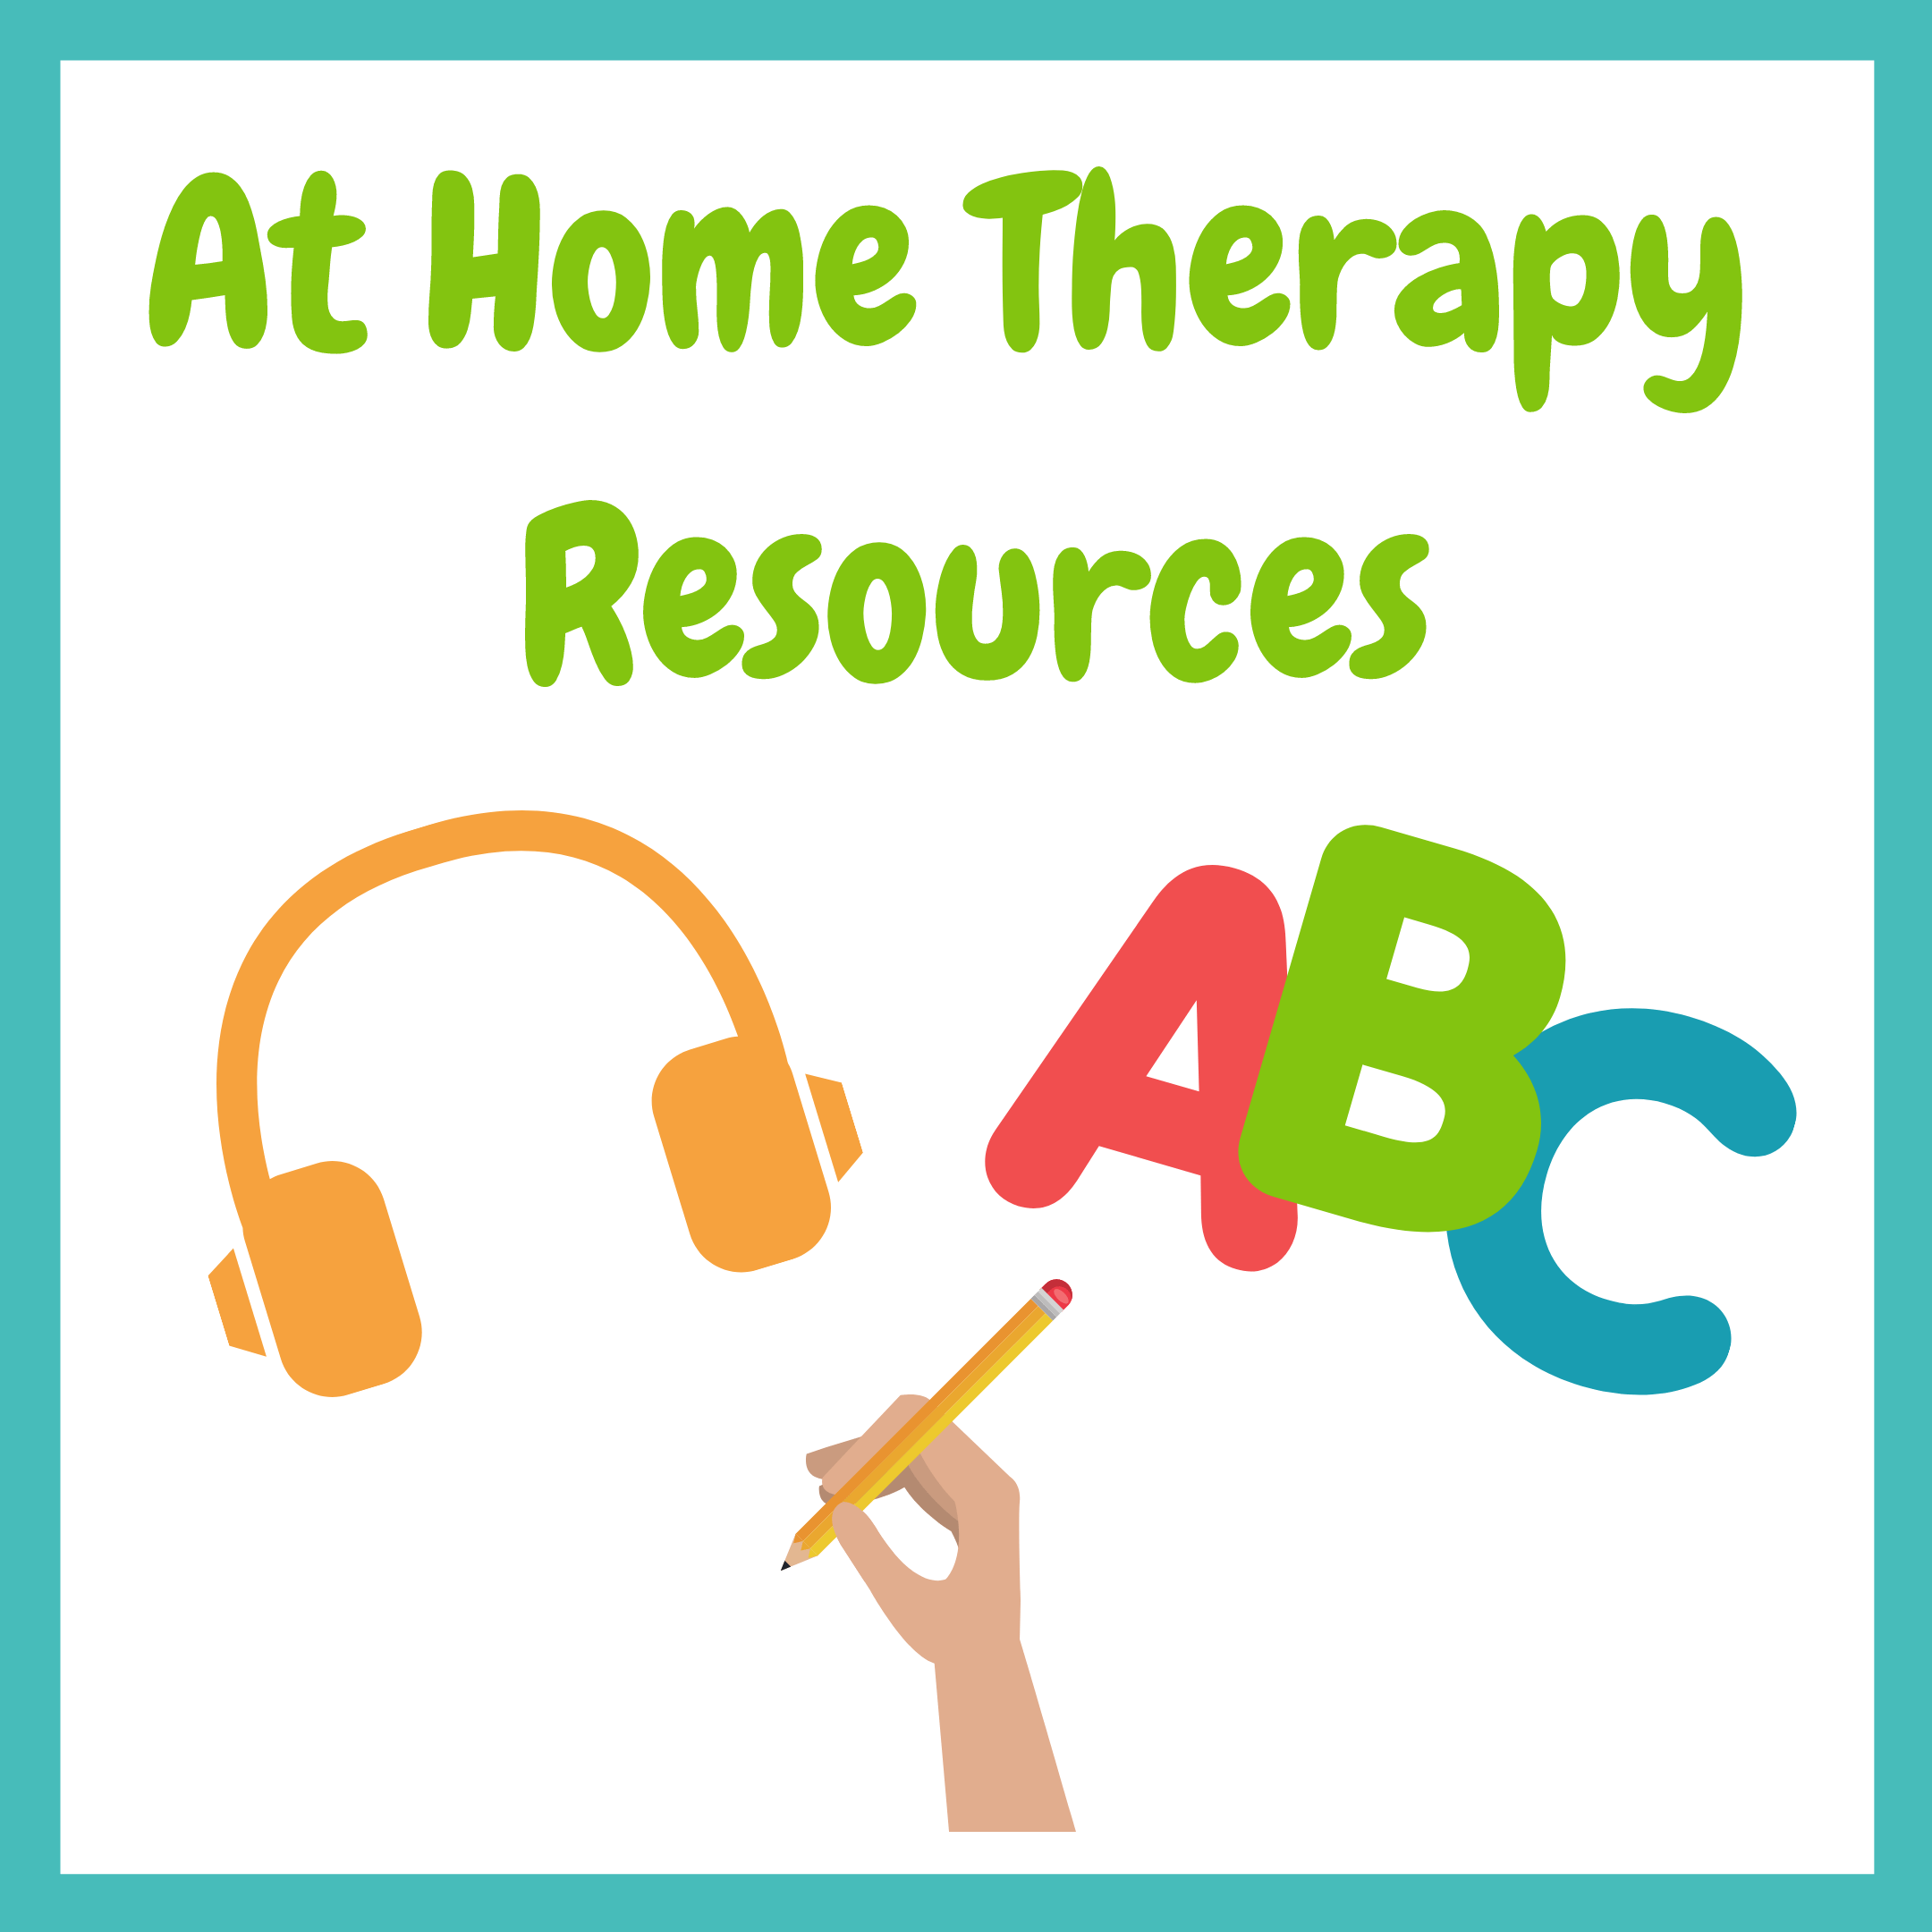 At Home Therapy Resources